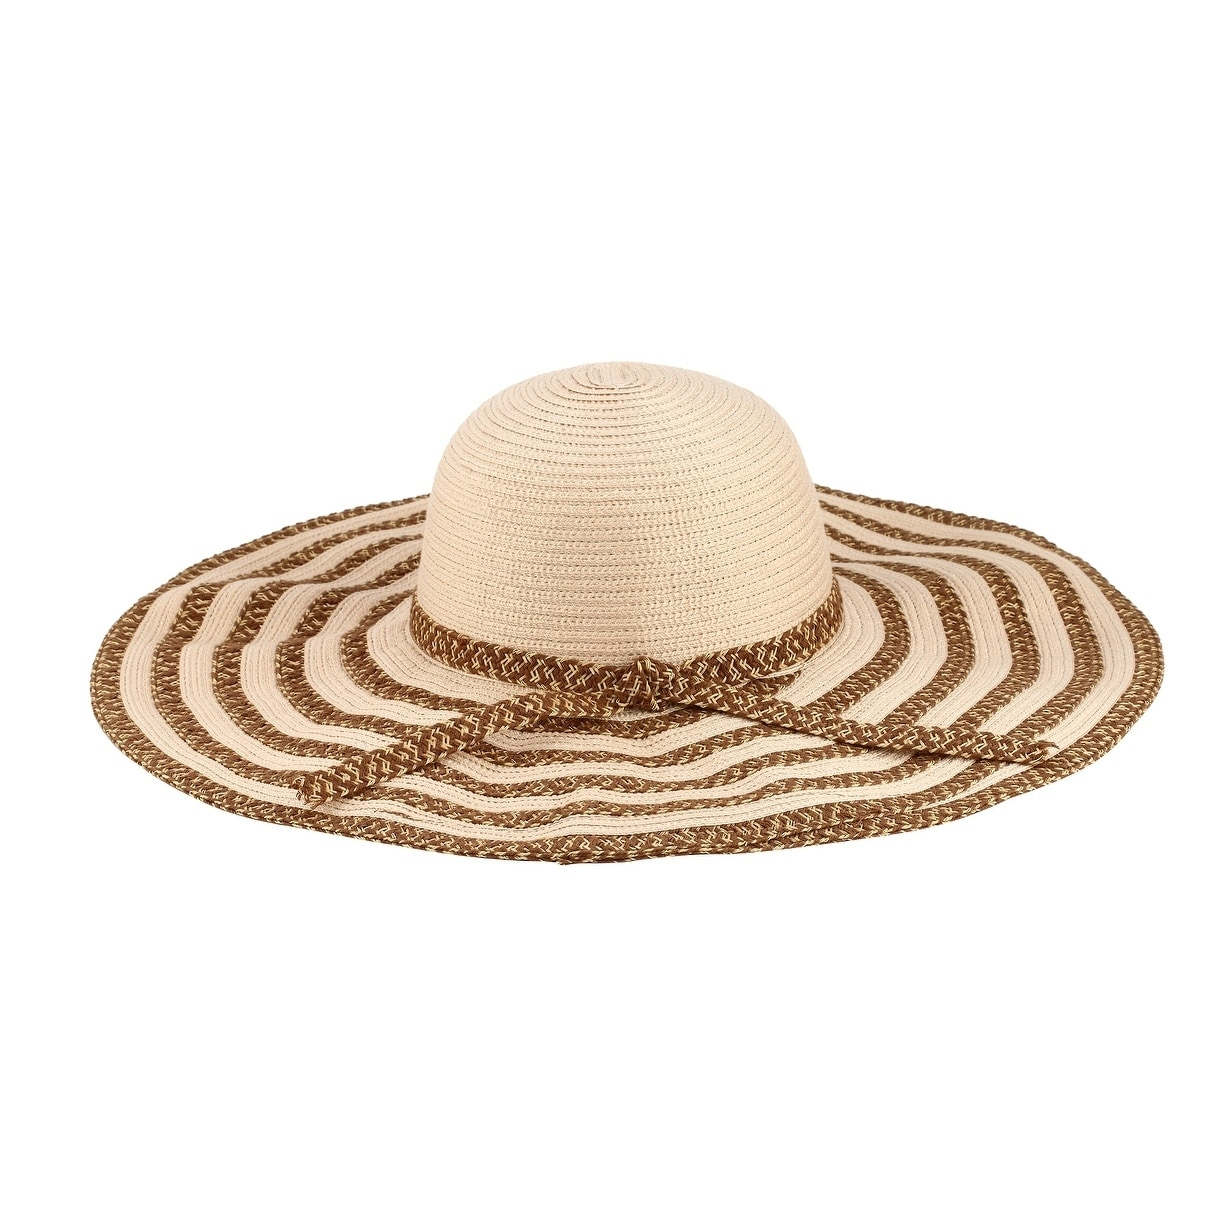 Shop Selma - 20% Nylon 80% Cotton Woven Fabric Extra Large Wide Brim Sun  Hat Sun Styles - AH-017-1-BE - Free Shipping On Orders Over  45 -  Overstock.com - ... 499c3783260